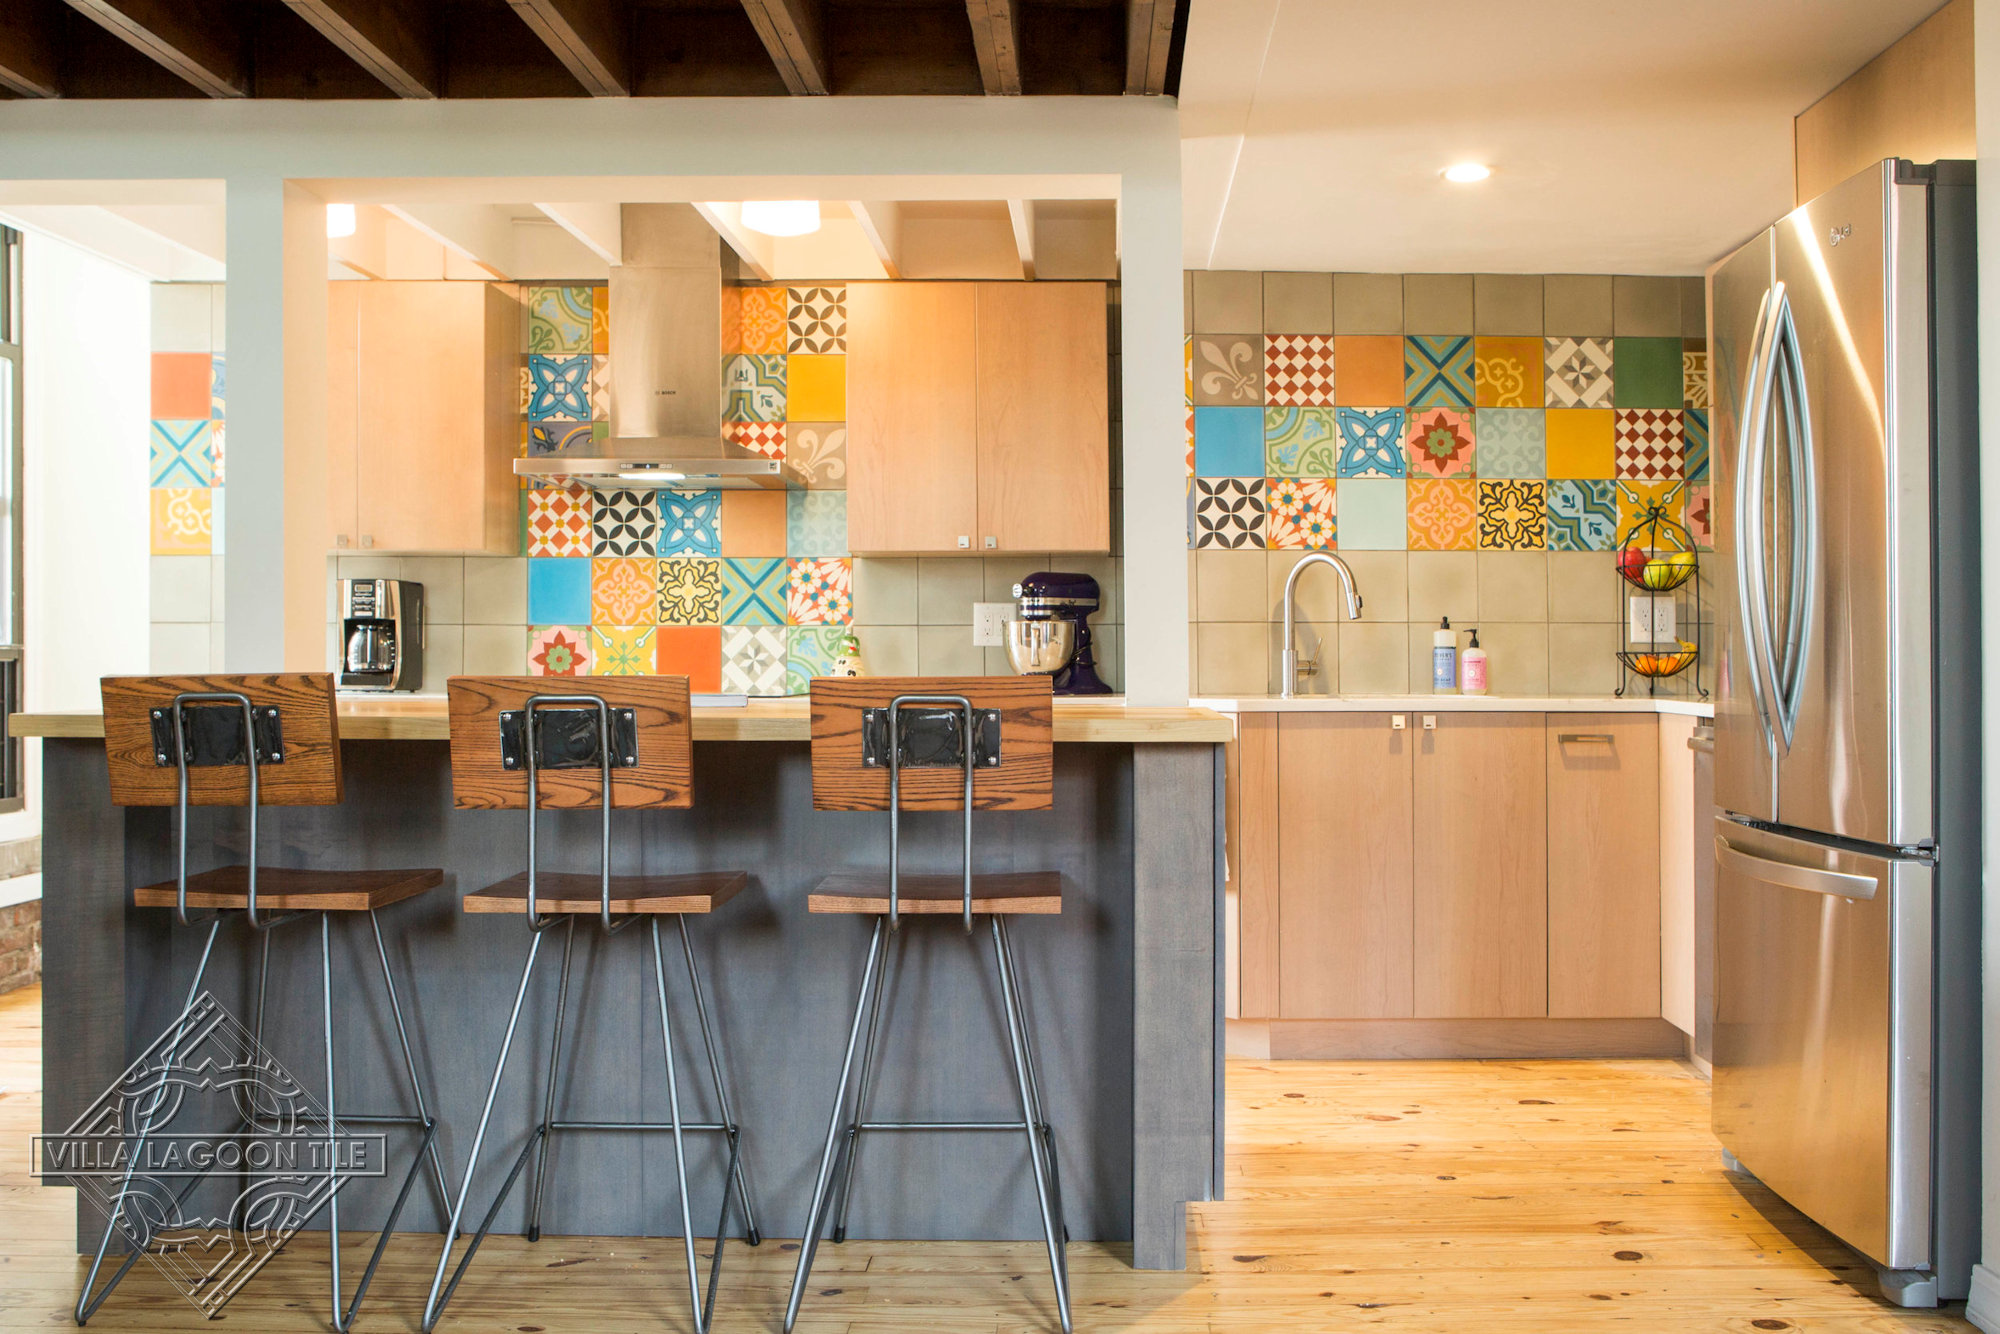 Small kitchen with colorful patchwork and solid cement tiles covering the wall.